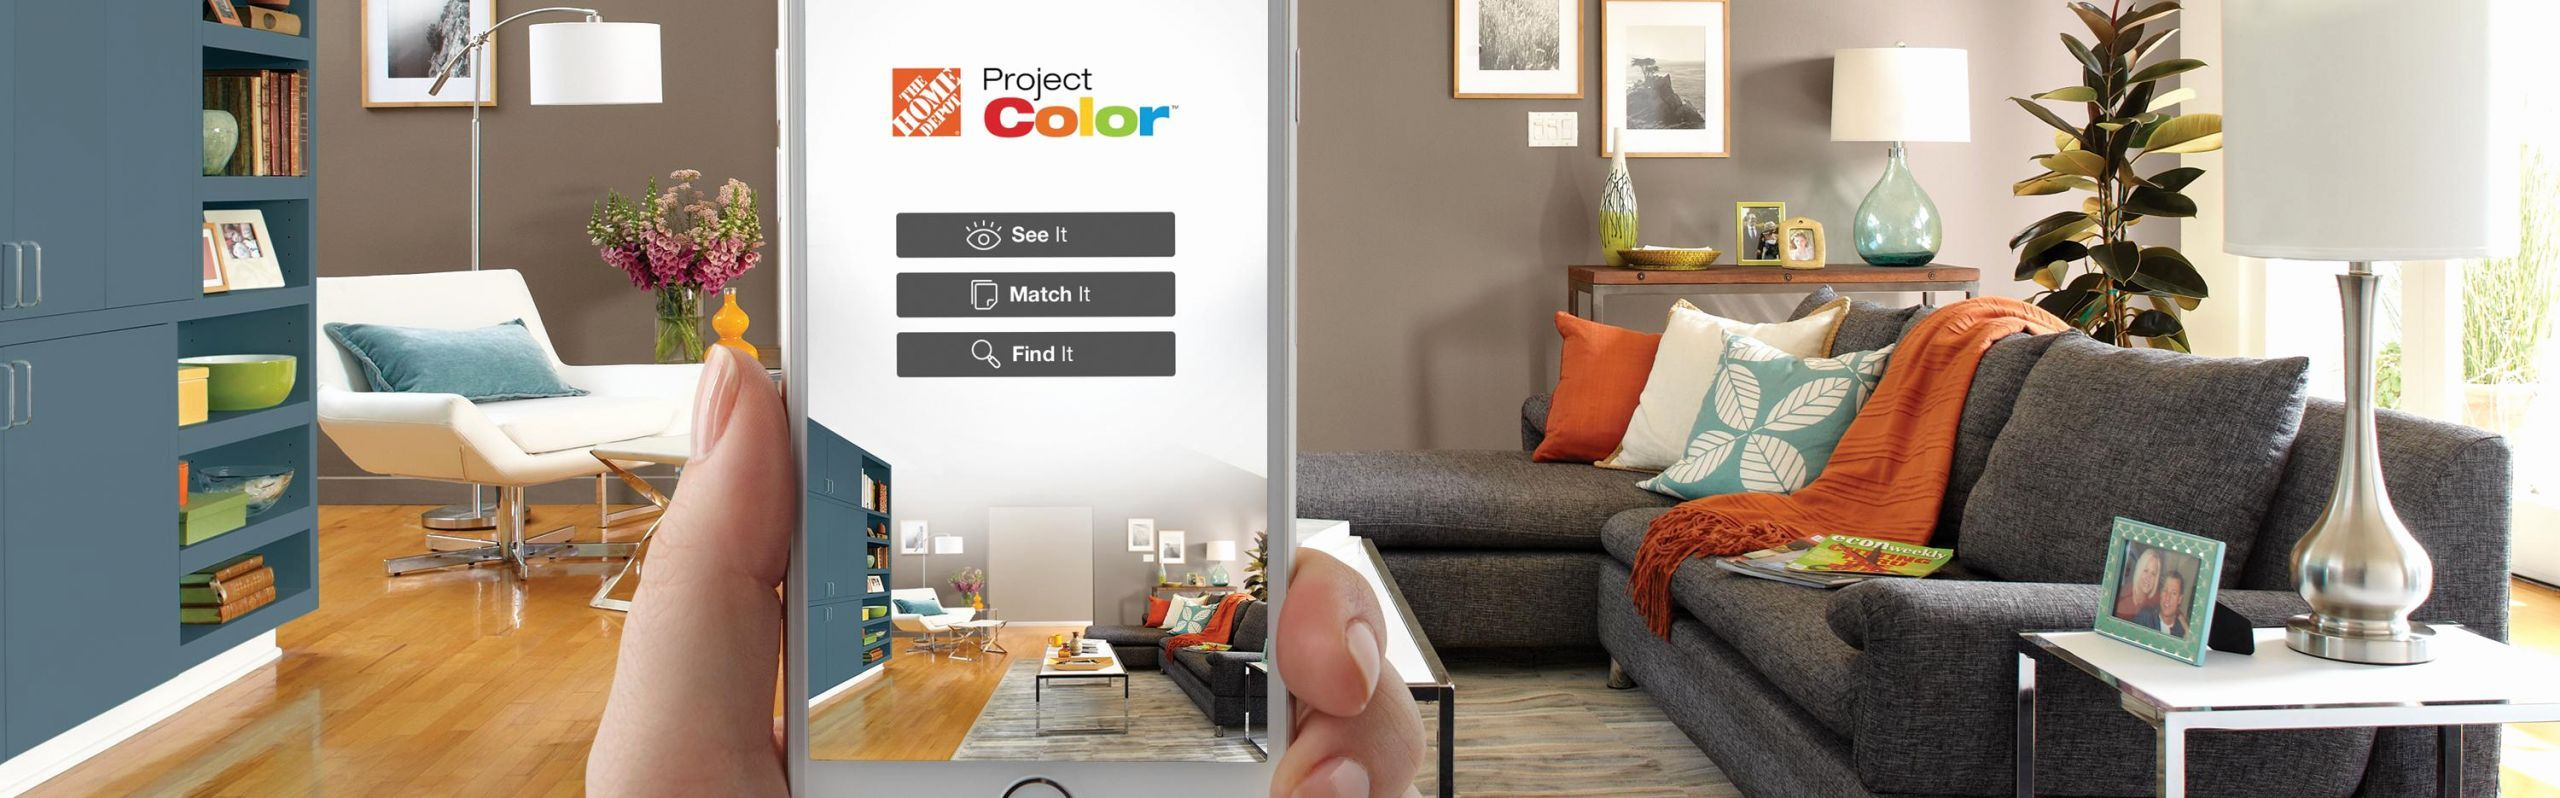 bedrooms paint color ideas awesome the home depot in 2020 on behr exterior house paint simulator id=99837